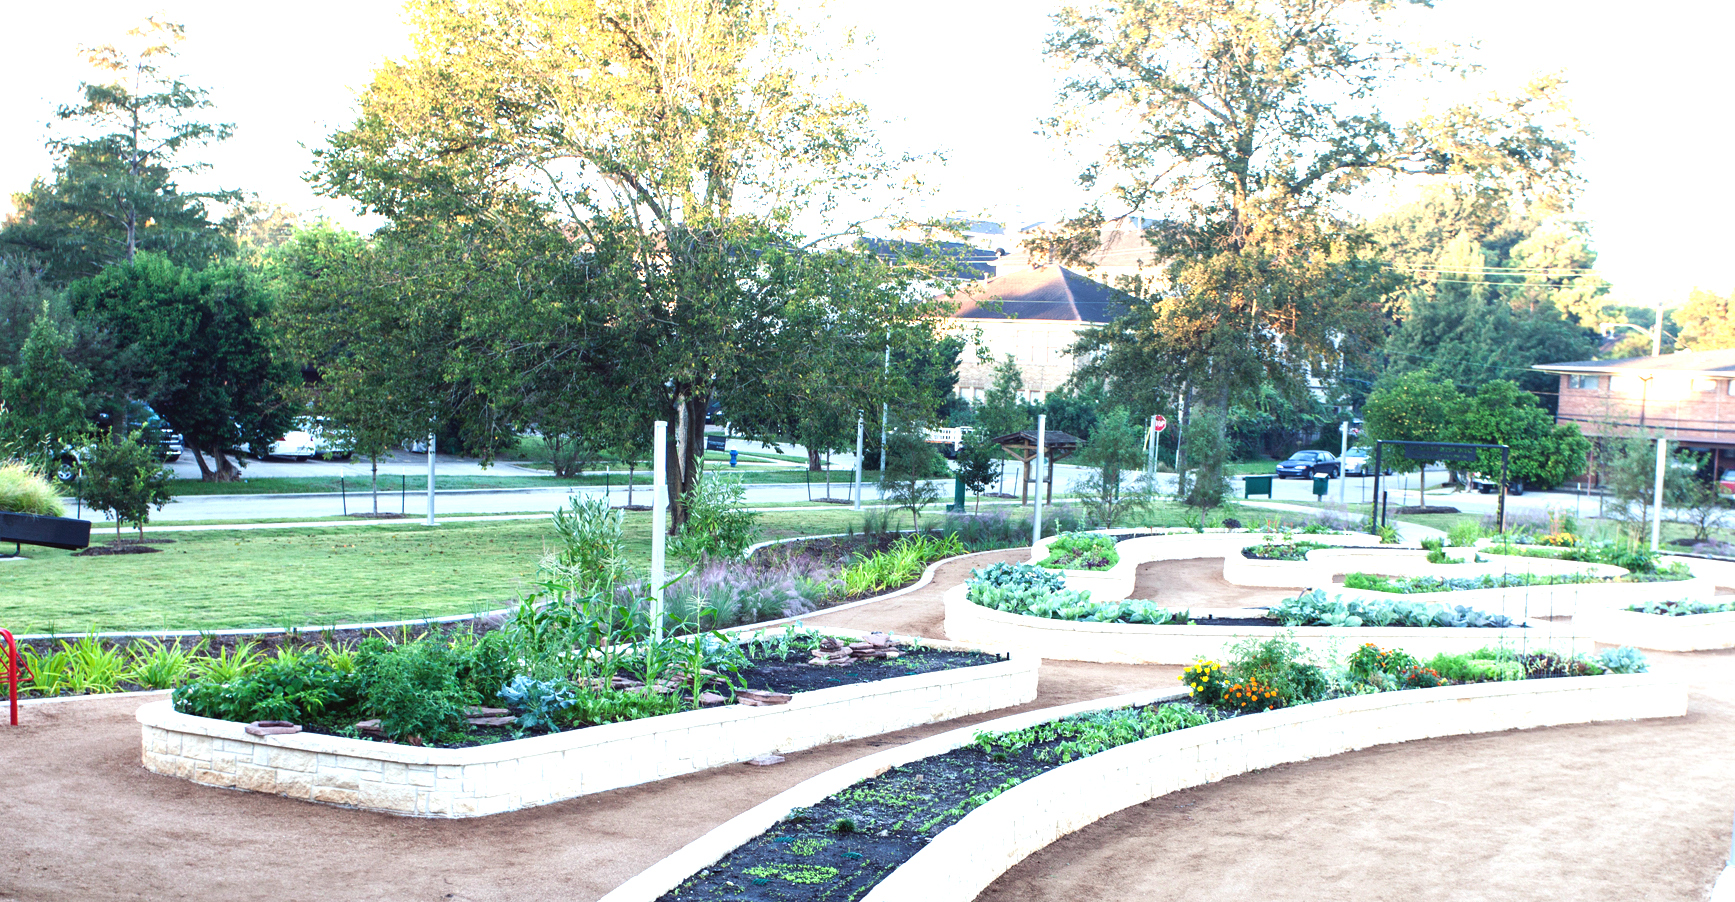 i deal neighborhood.  Community gardens, deed restriction, and 24-hour Sheriff patrol are bonuses of Mandell Place.